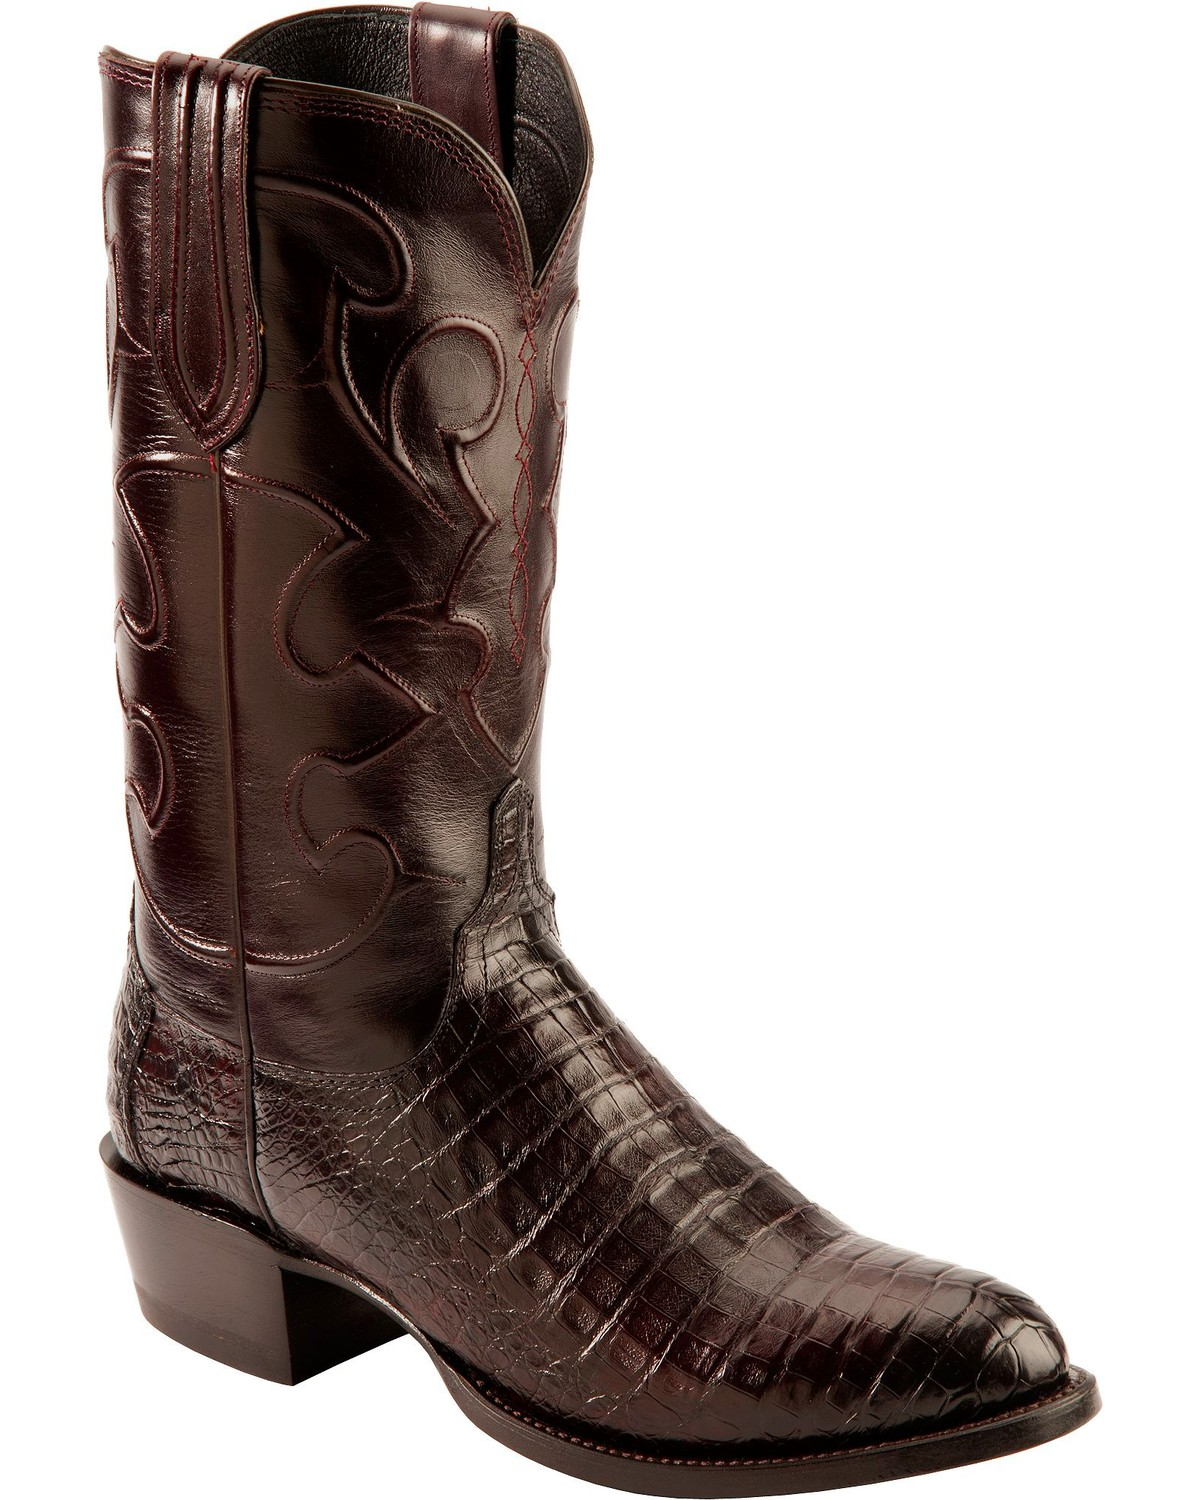 70c1e208f74 Lucchese Men's Charles Round Toe Crocodile Western Boots